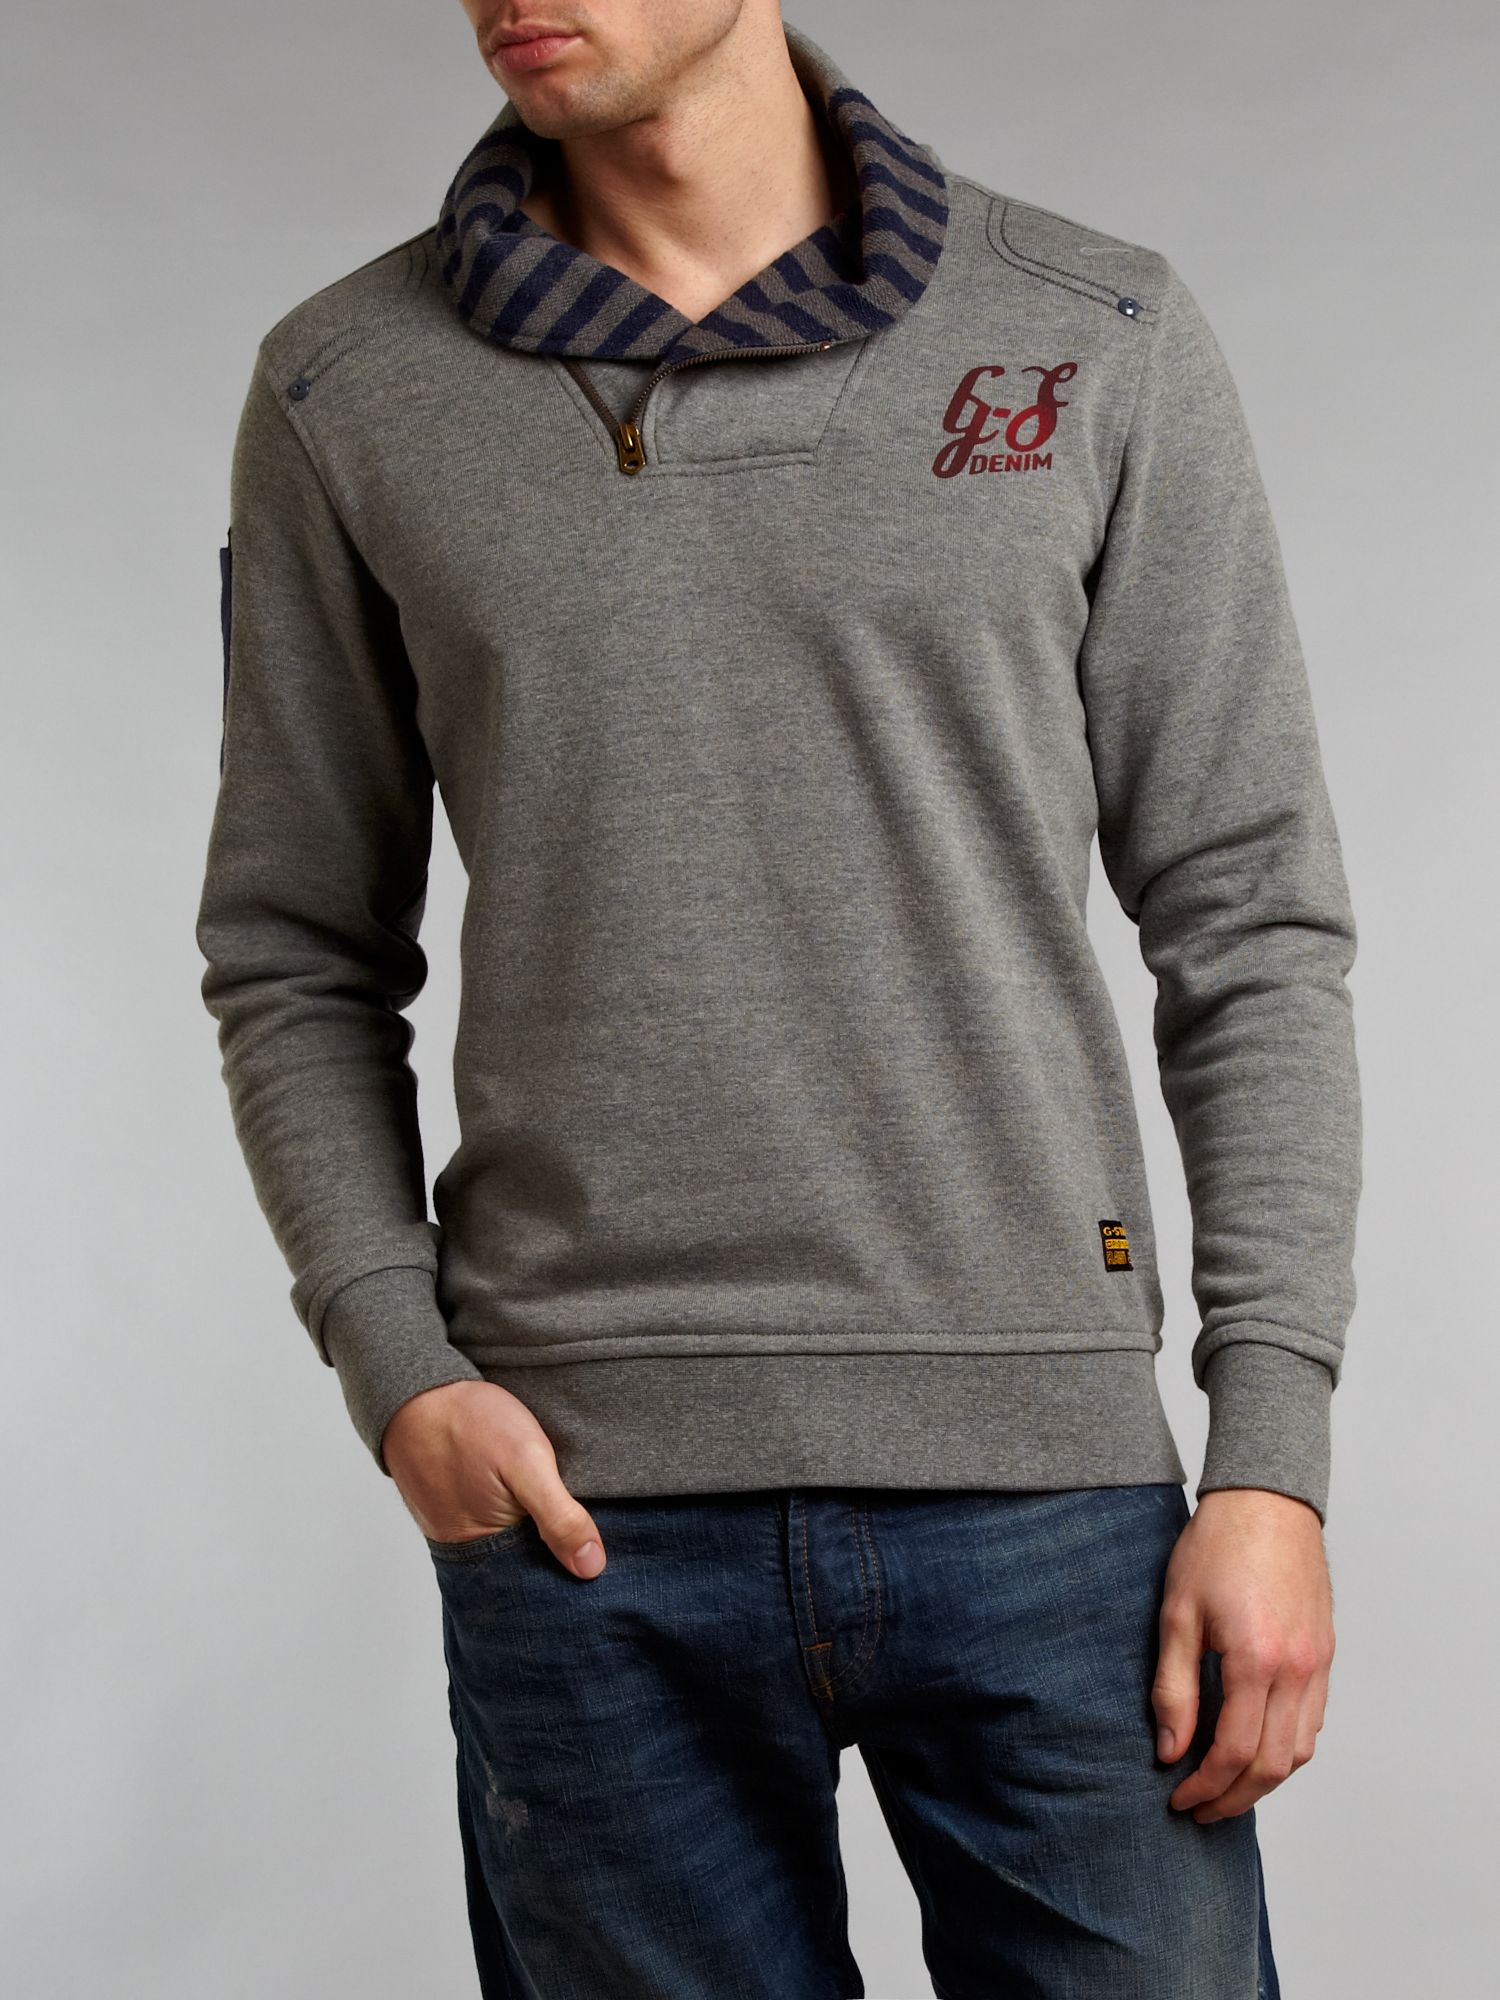 G star raw half zip through sweat shirt in gray for men lyst for How to not sweat through a shirt